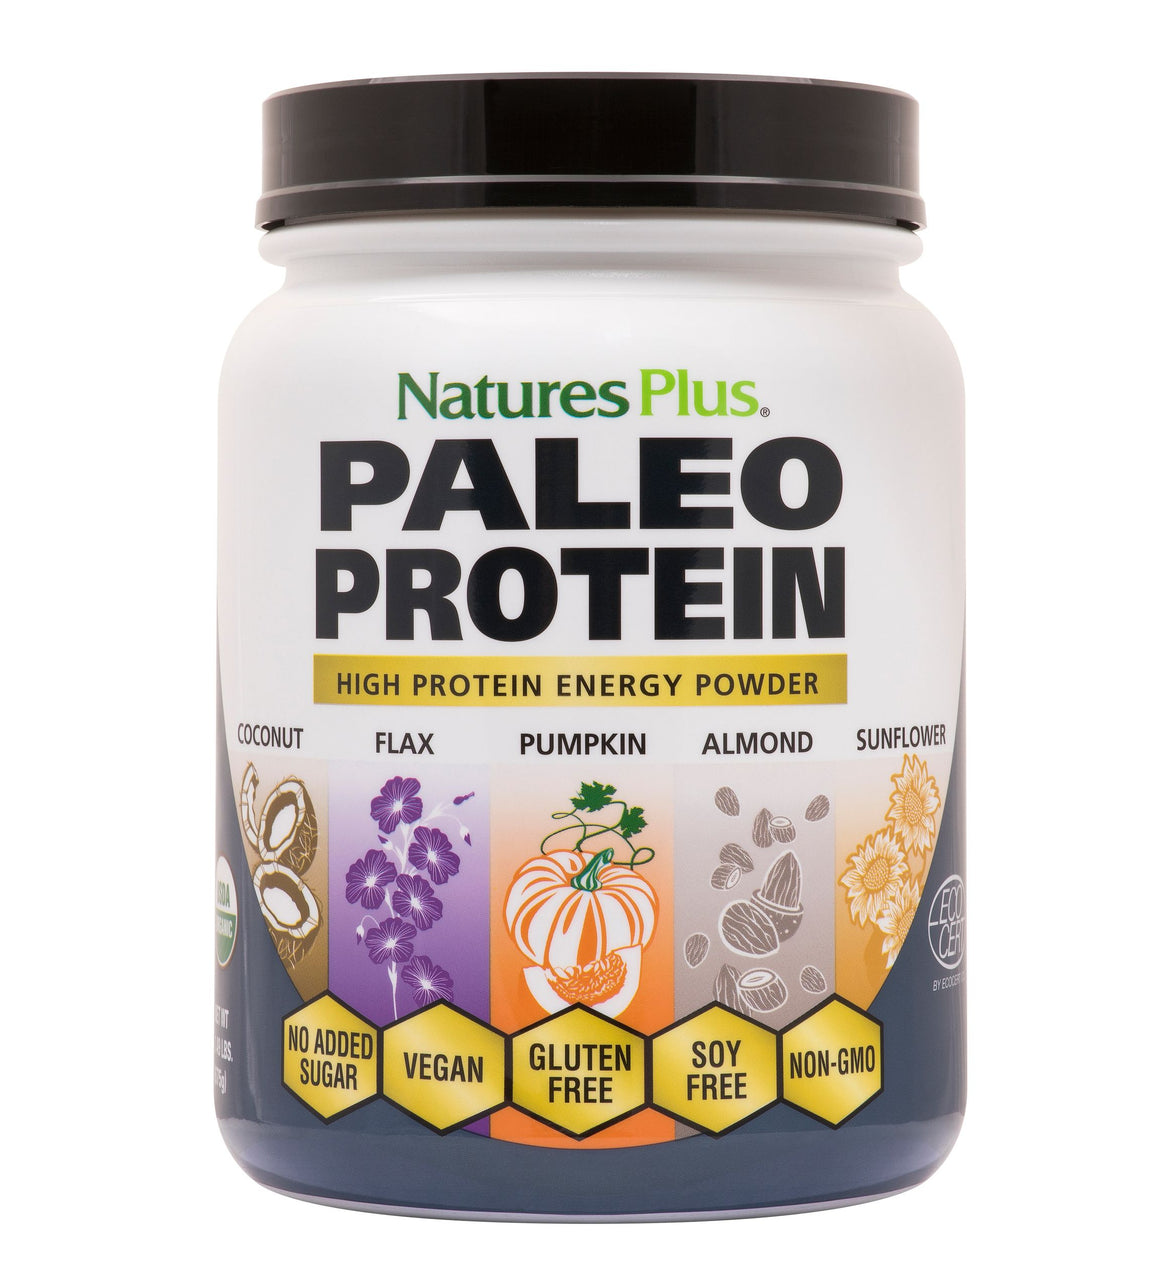 A jar of Nature's Plus Organic Paleo Protein